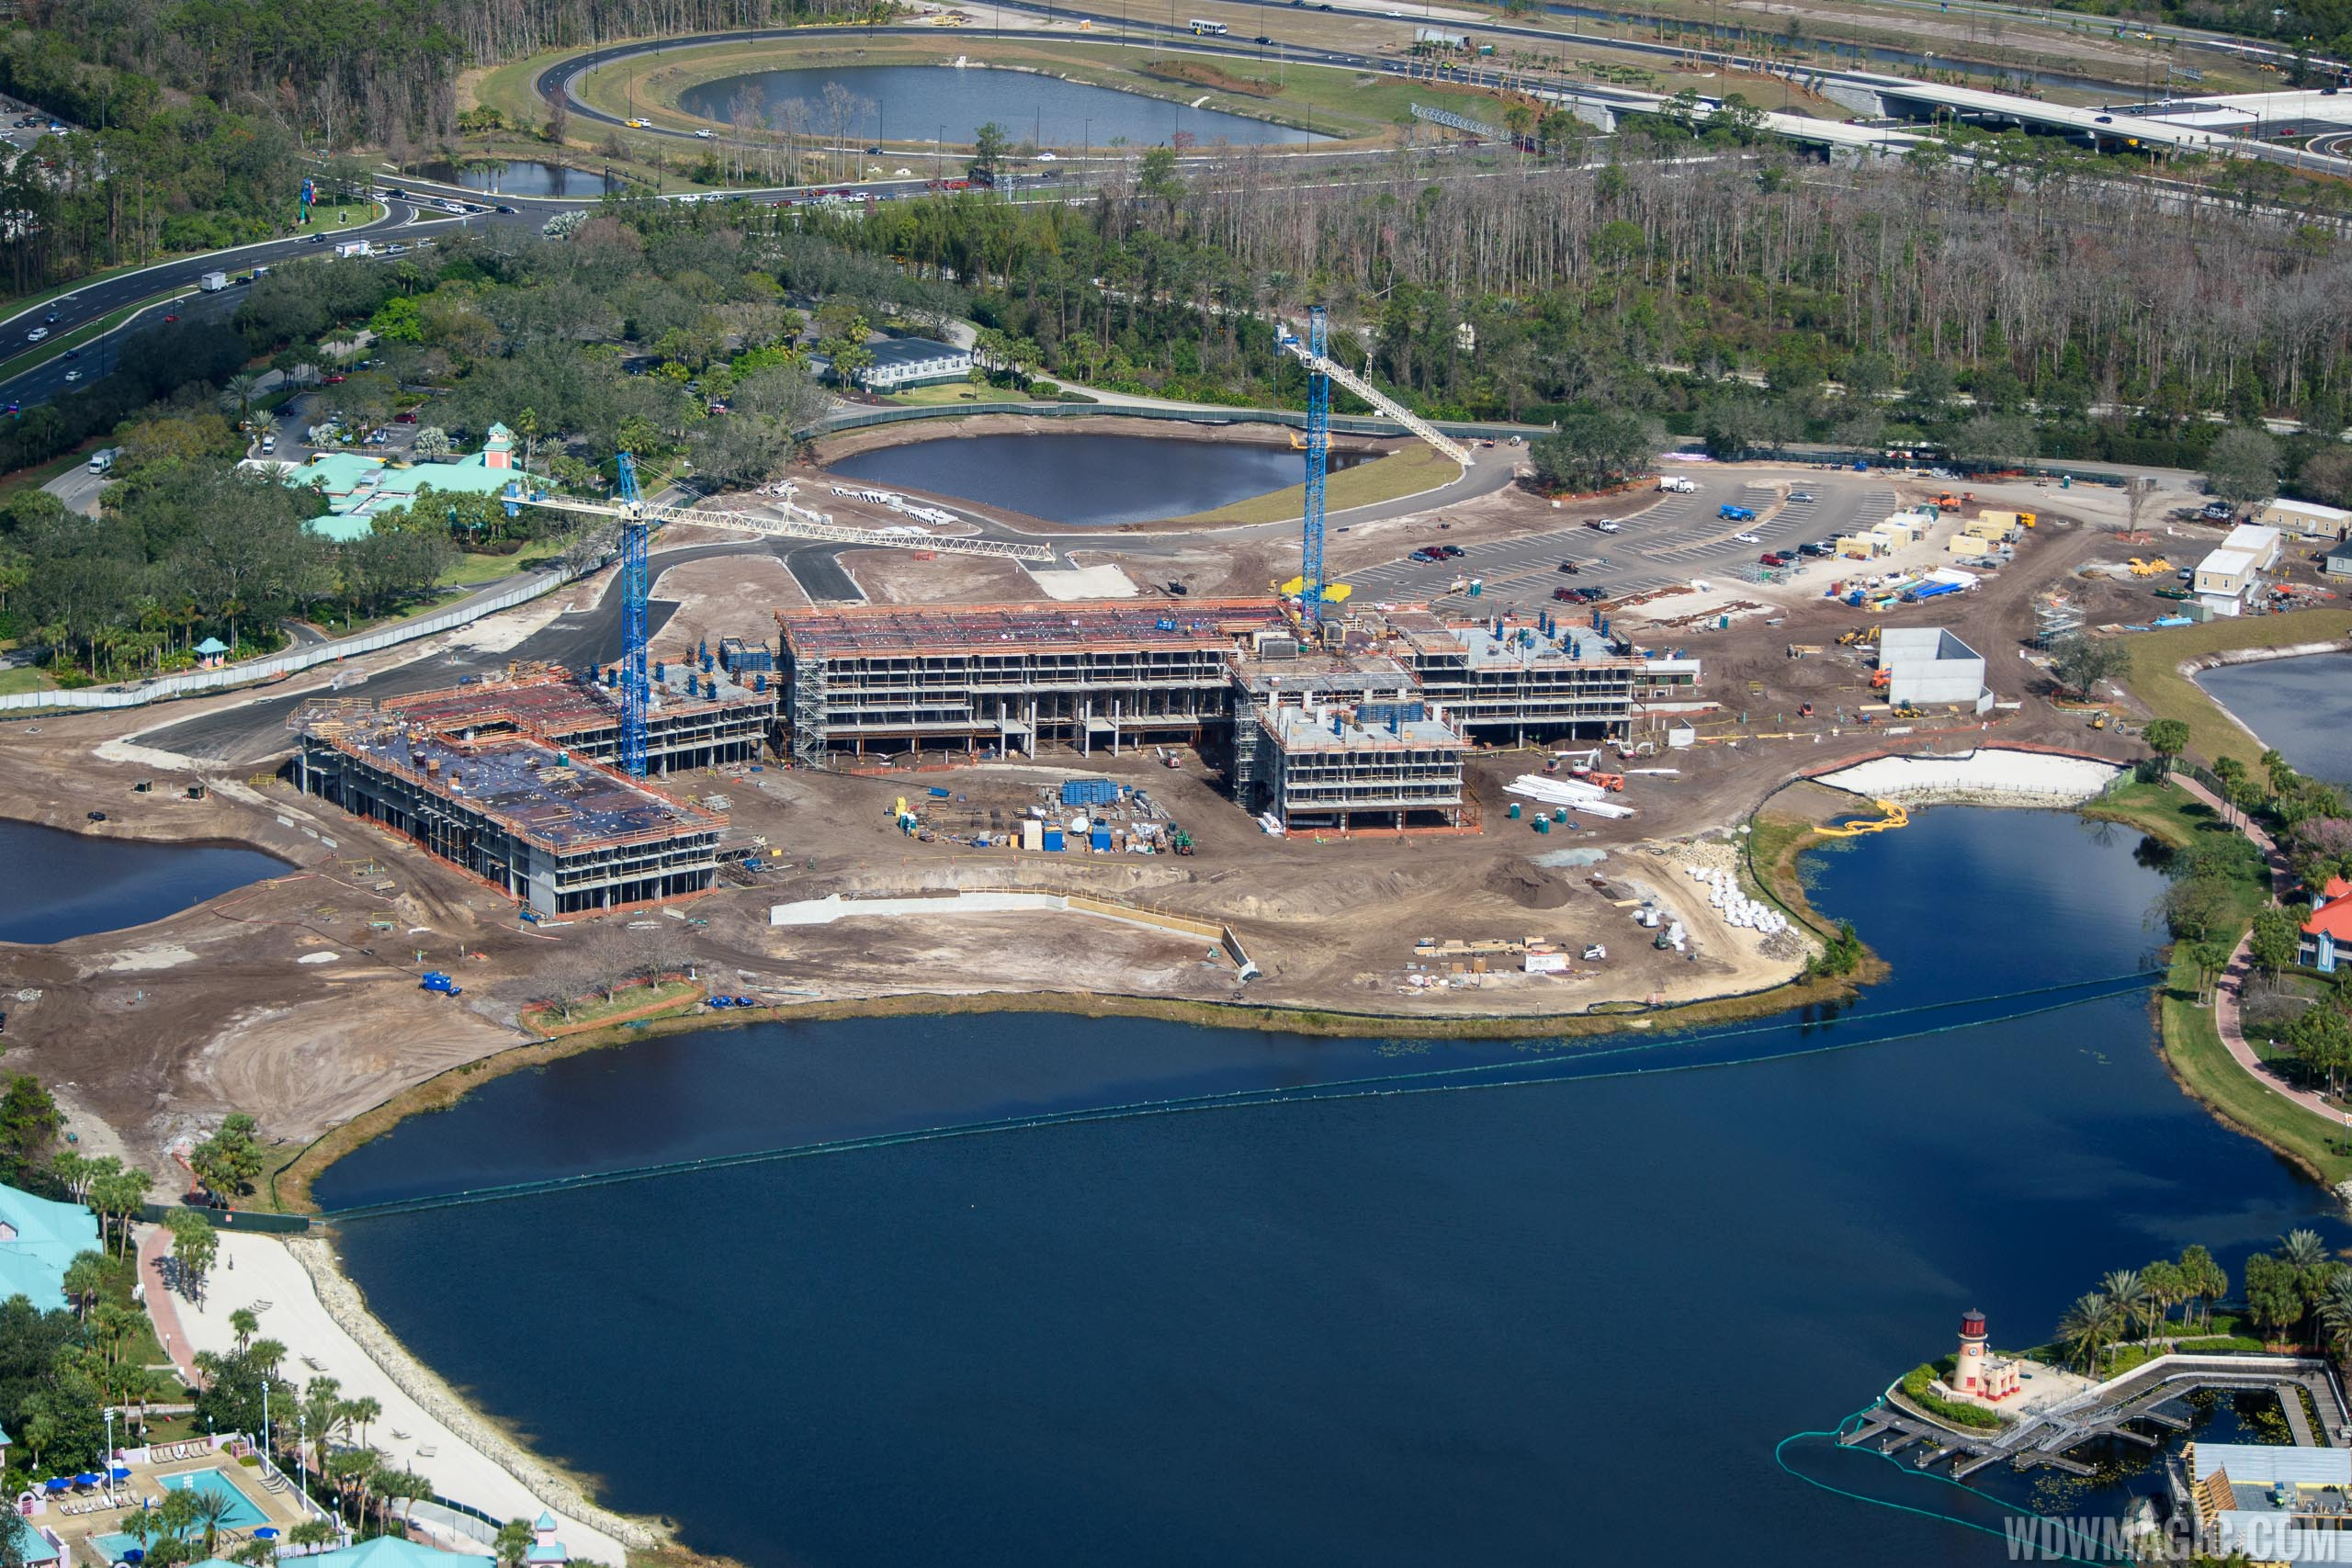 PHOTOS - Latest look at the Disney Riviera Resort under construction